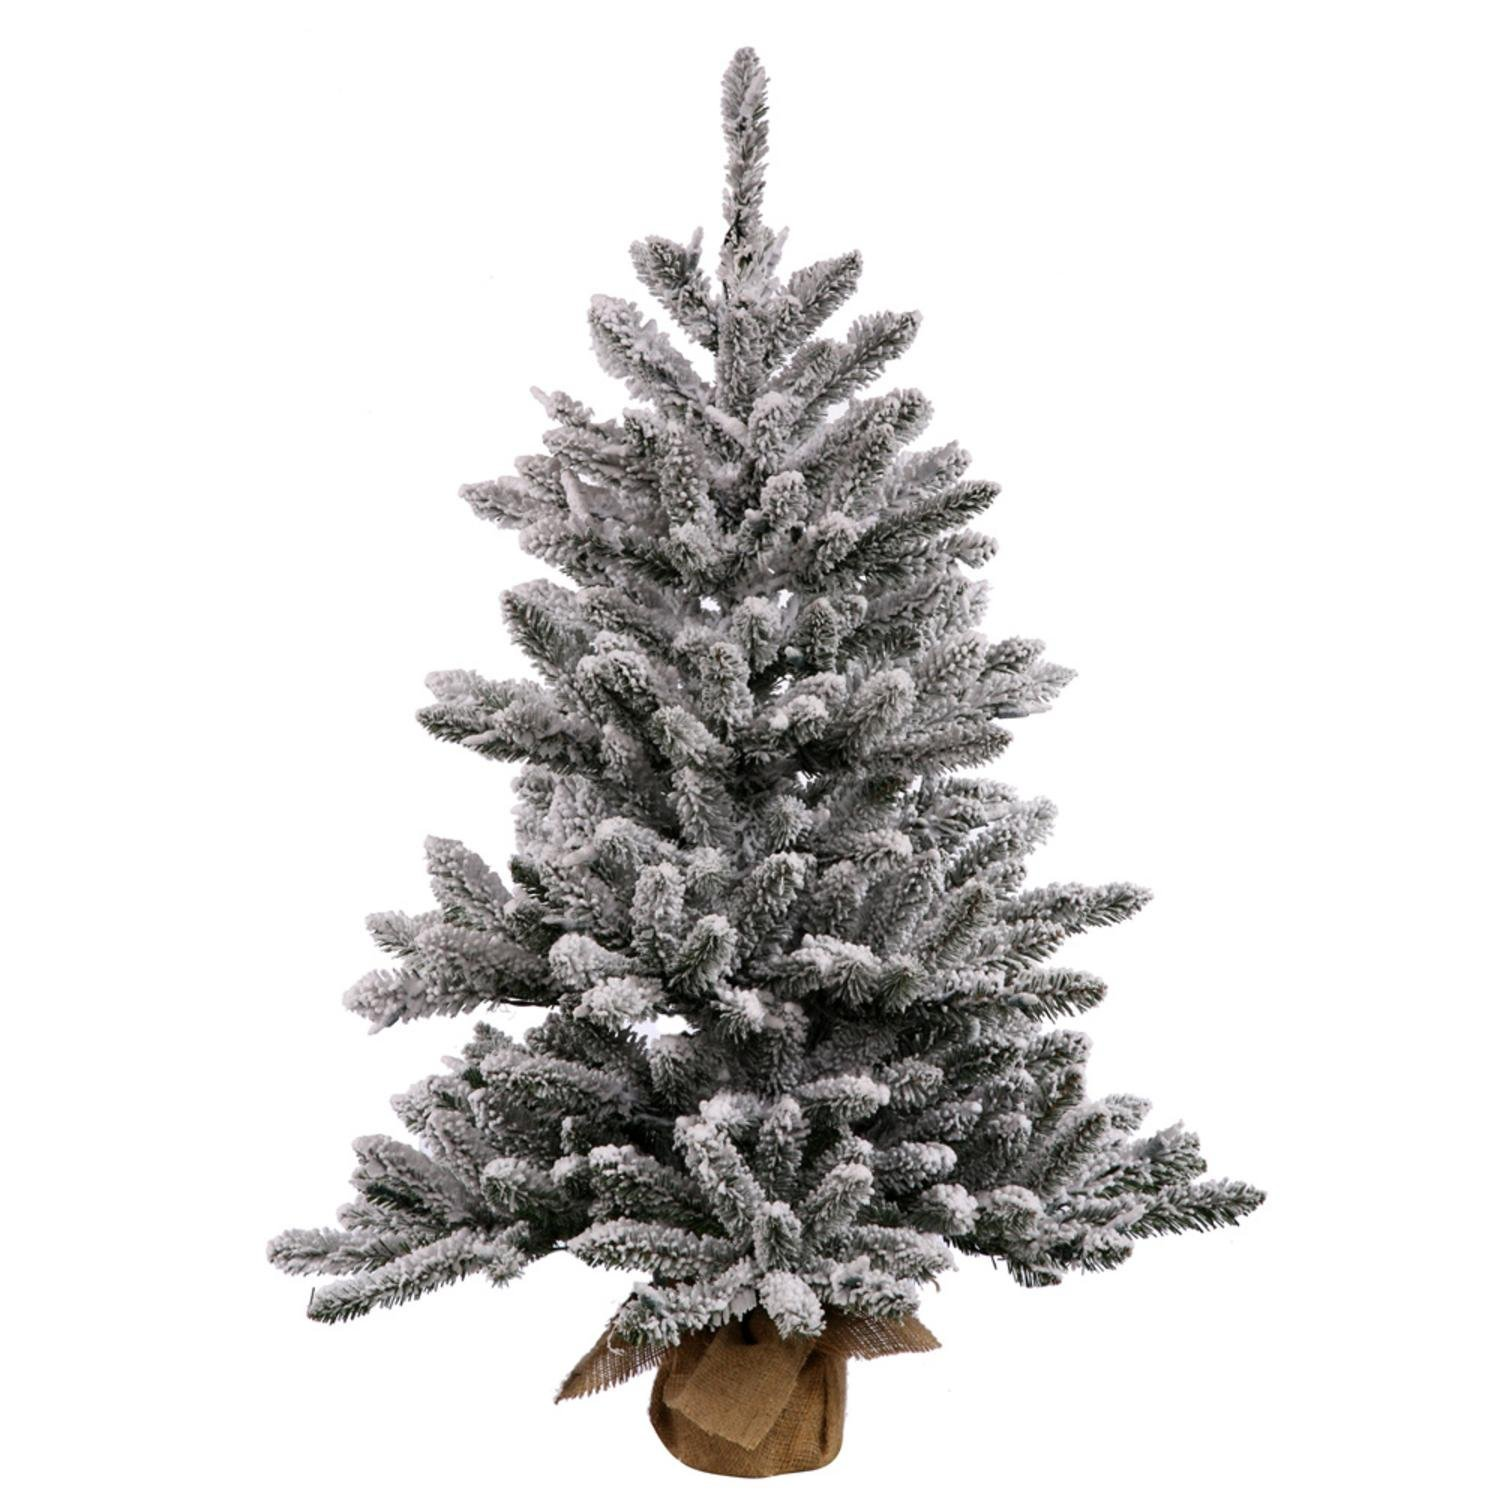 Top 6 Christmas Trees. Roundup of the top Christmas trees to purchase in Canada and United States